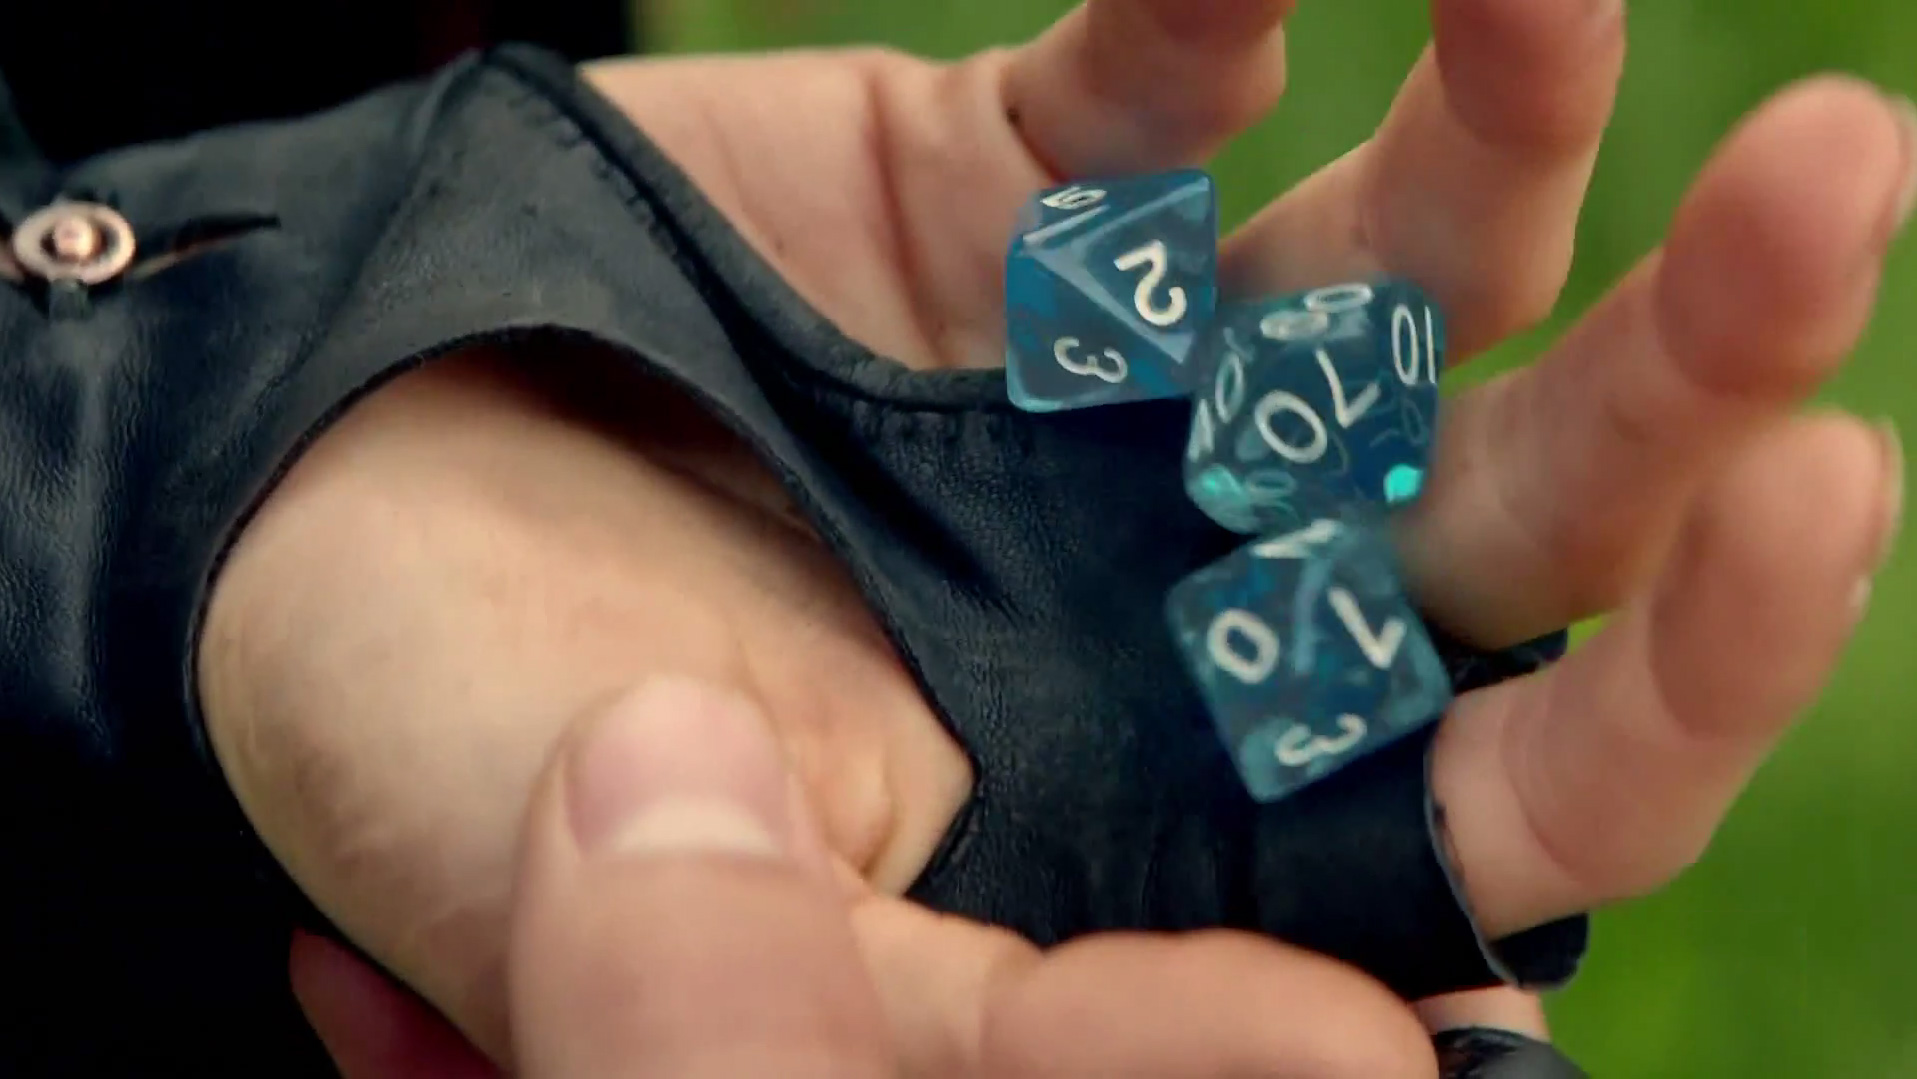 tncc provider manual 7th edition